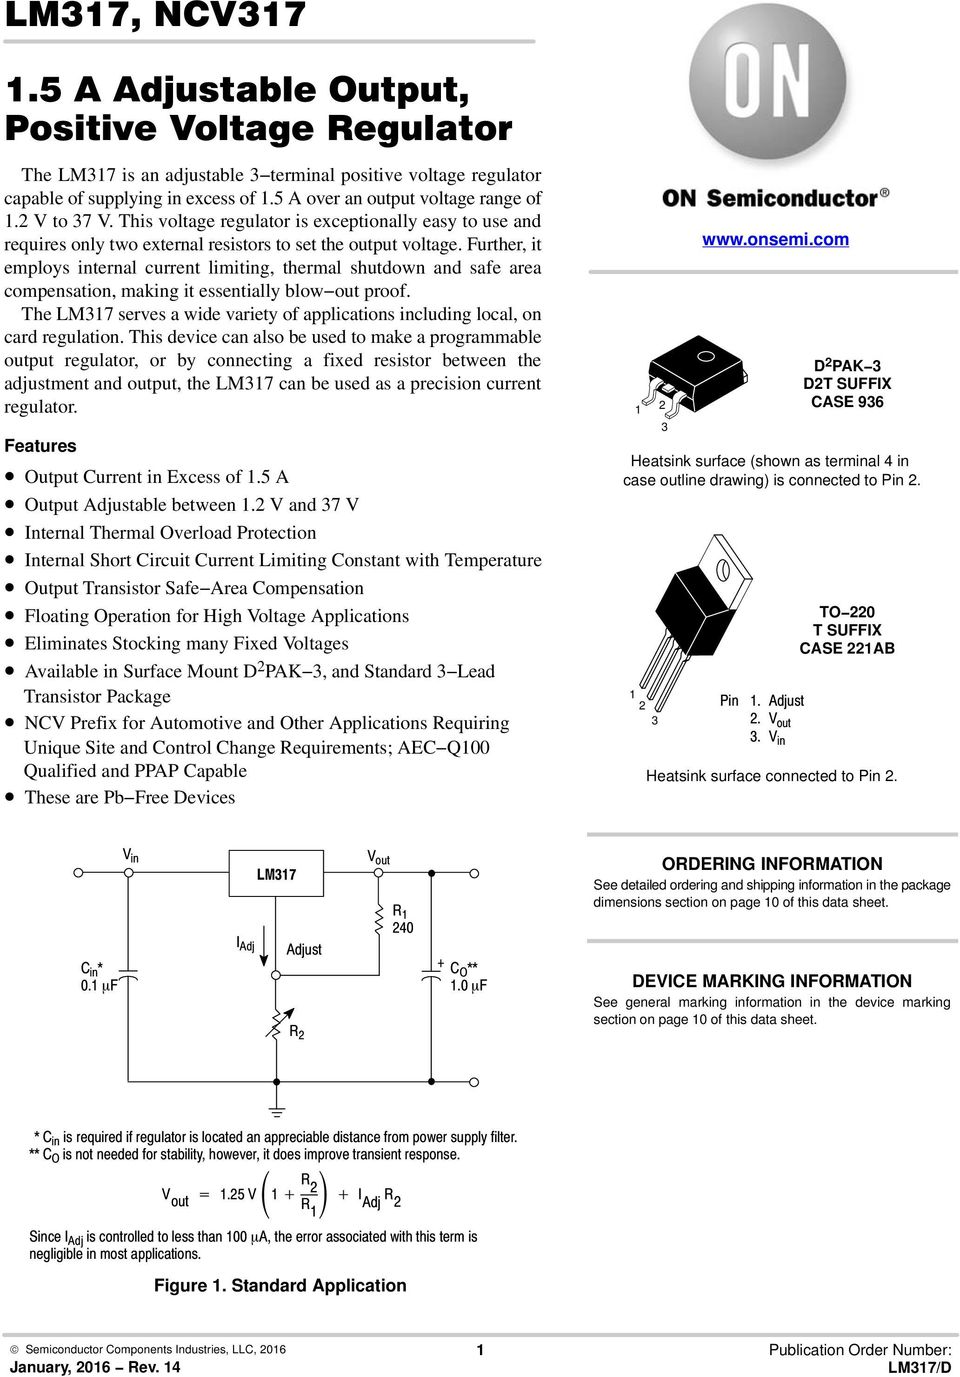 Lm317 Ncv A Adjustable Output Positive Voltage Regulator Pdf And Built The Circuit As Shown Using An Further It Employs Internal Current Limiting Thermal Shutdown Safe Area Compensation Making